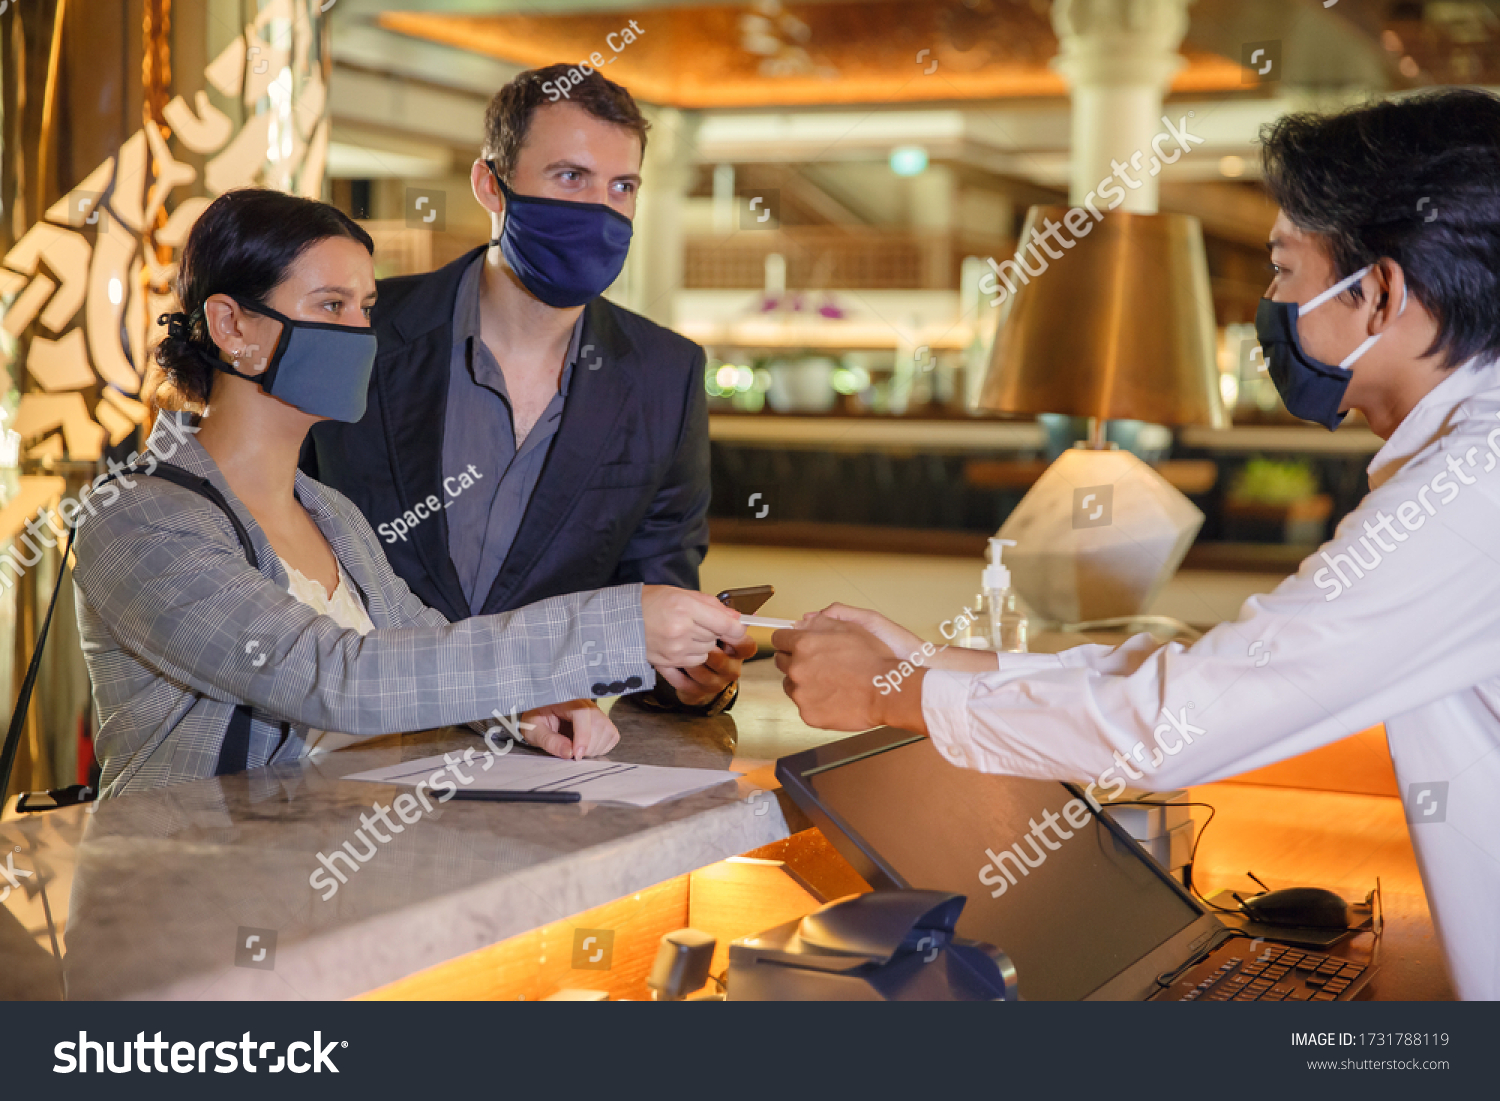 Couple and receptionist at counter in hotel wearing medical masks as precaution against virus. Young couple on a business trip doing check-in at the hotel #1731788119